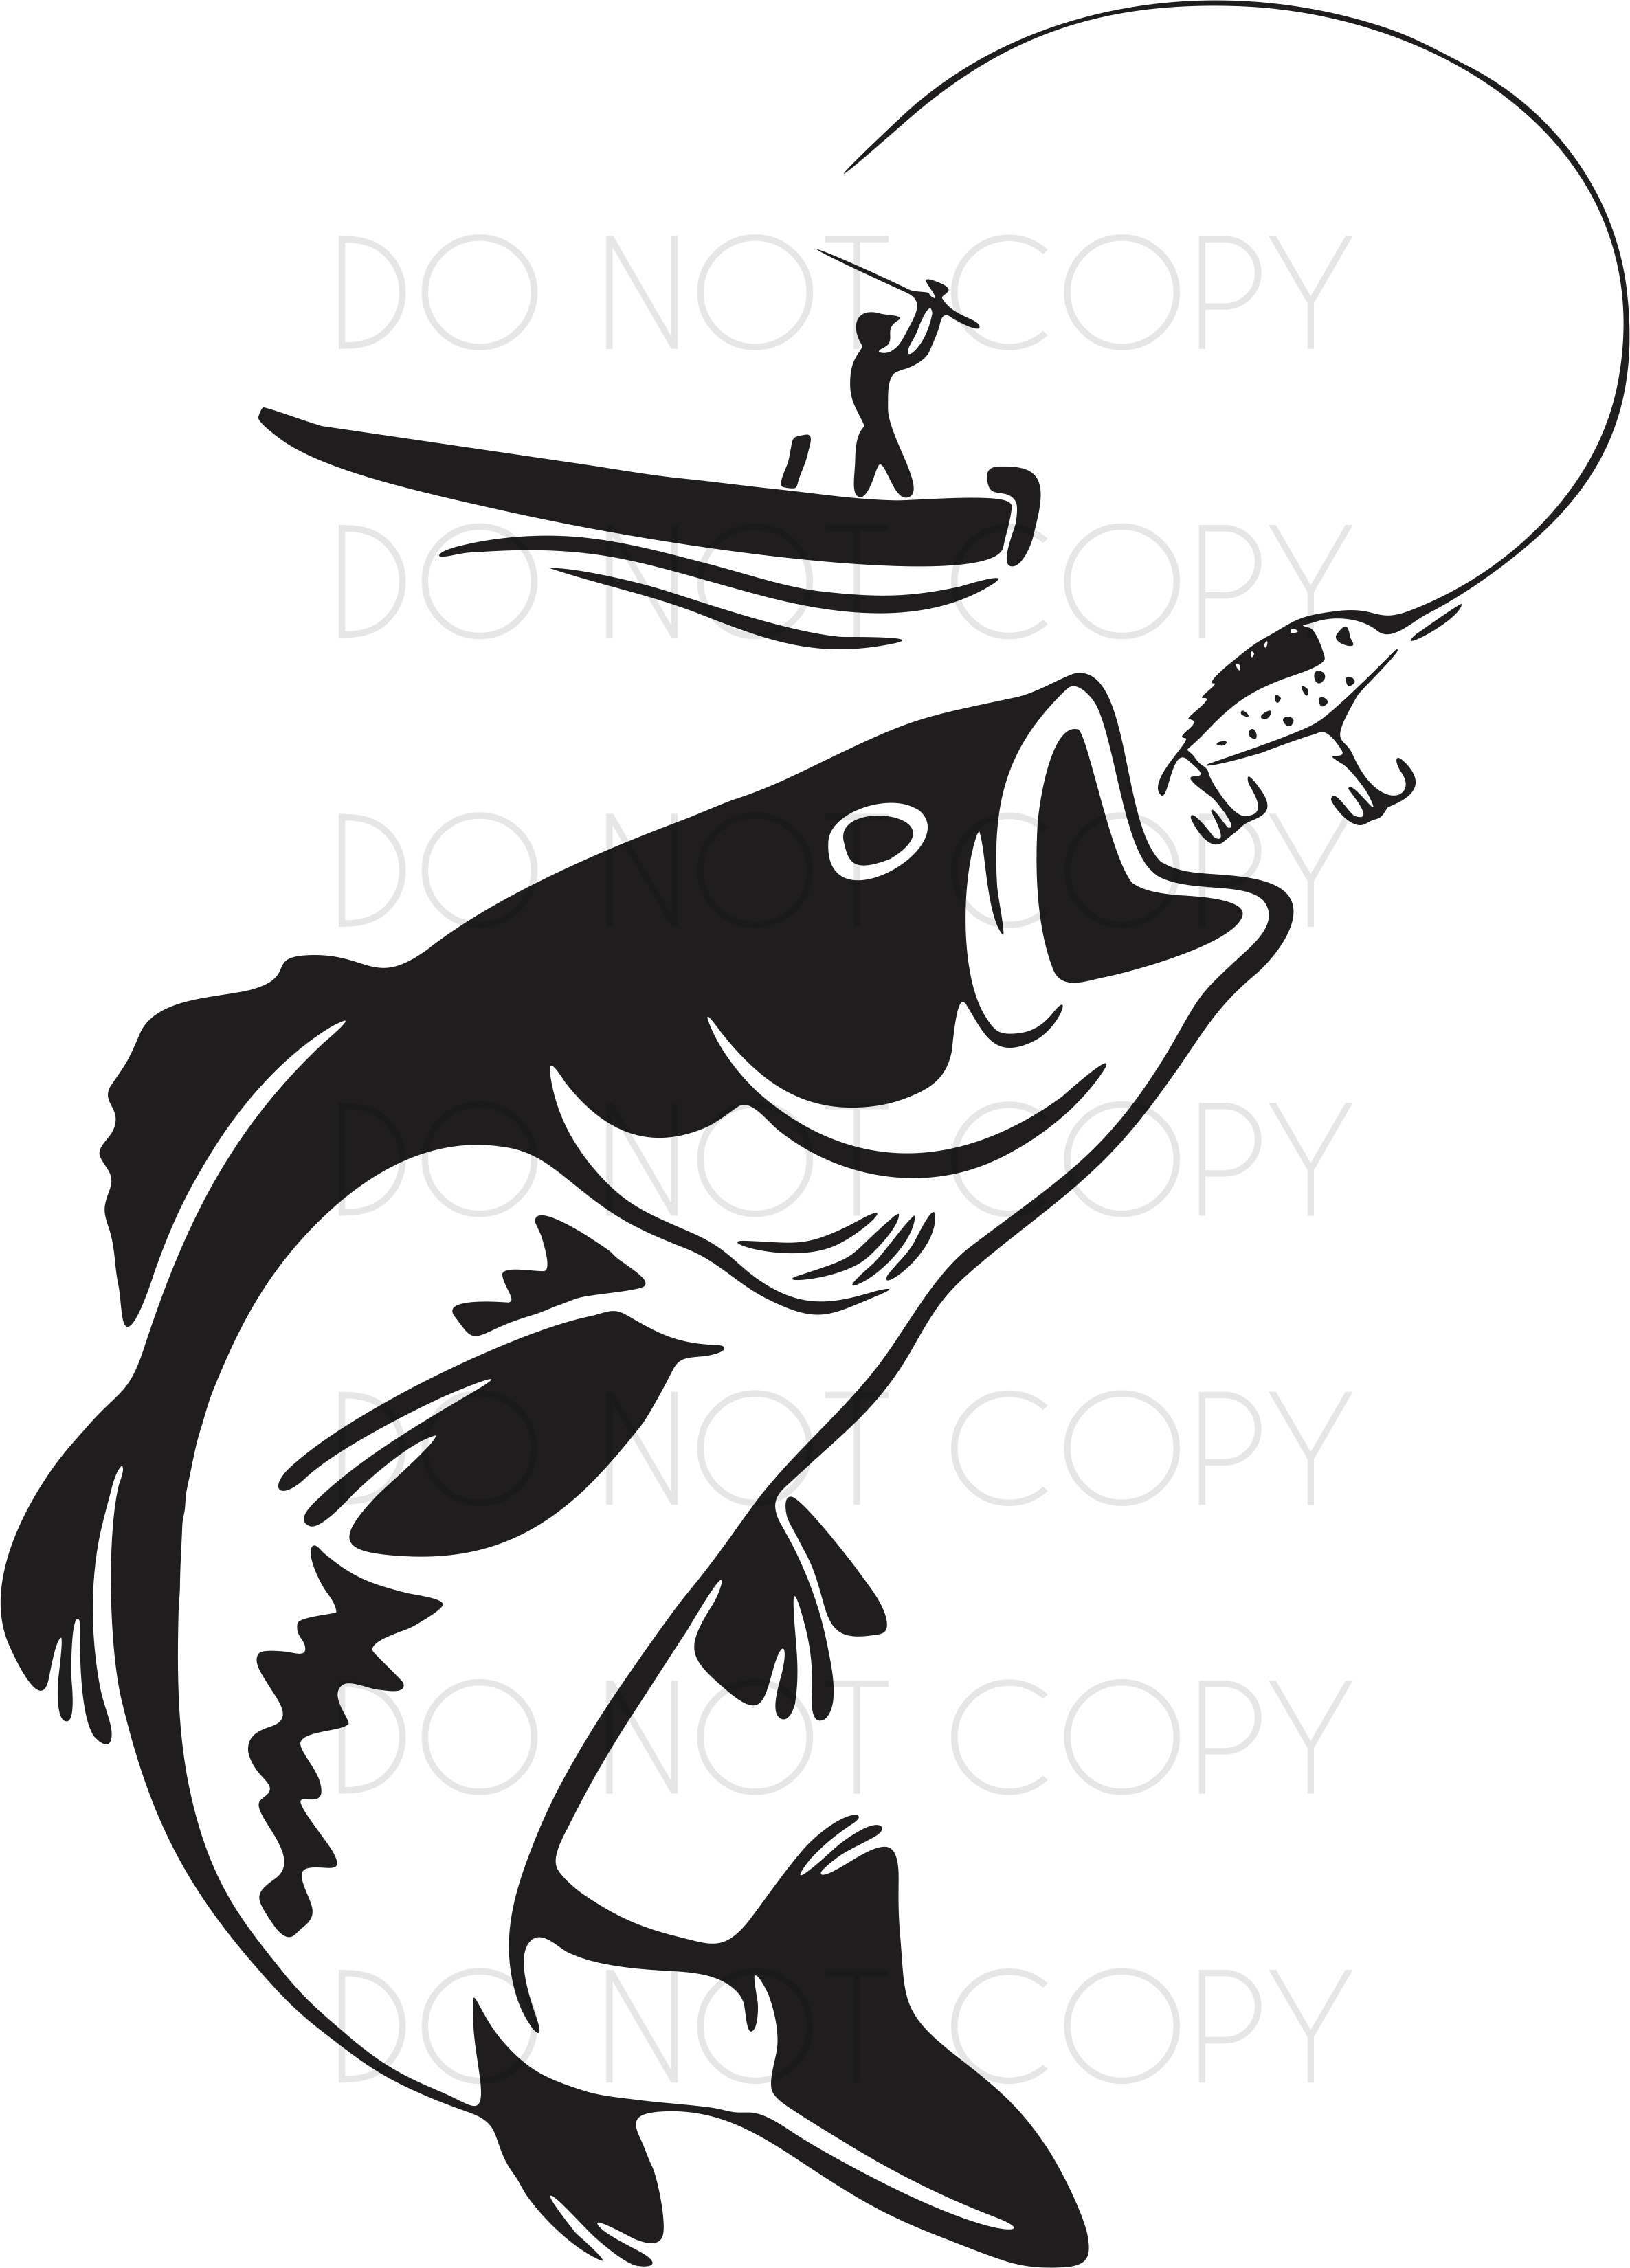 Download Fisherman Catching A Fish Svg Print Design Svg Dxf Print Instant Download Digital File For Cricut Silhouette And Printers